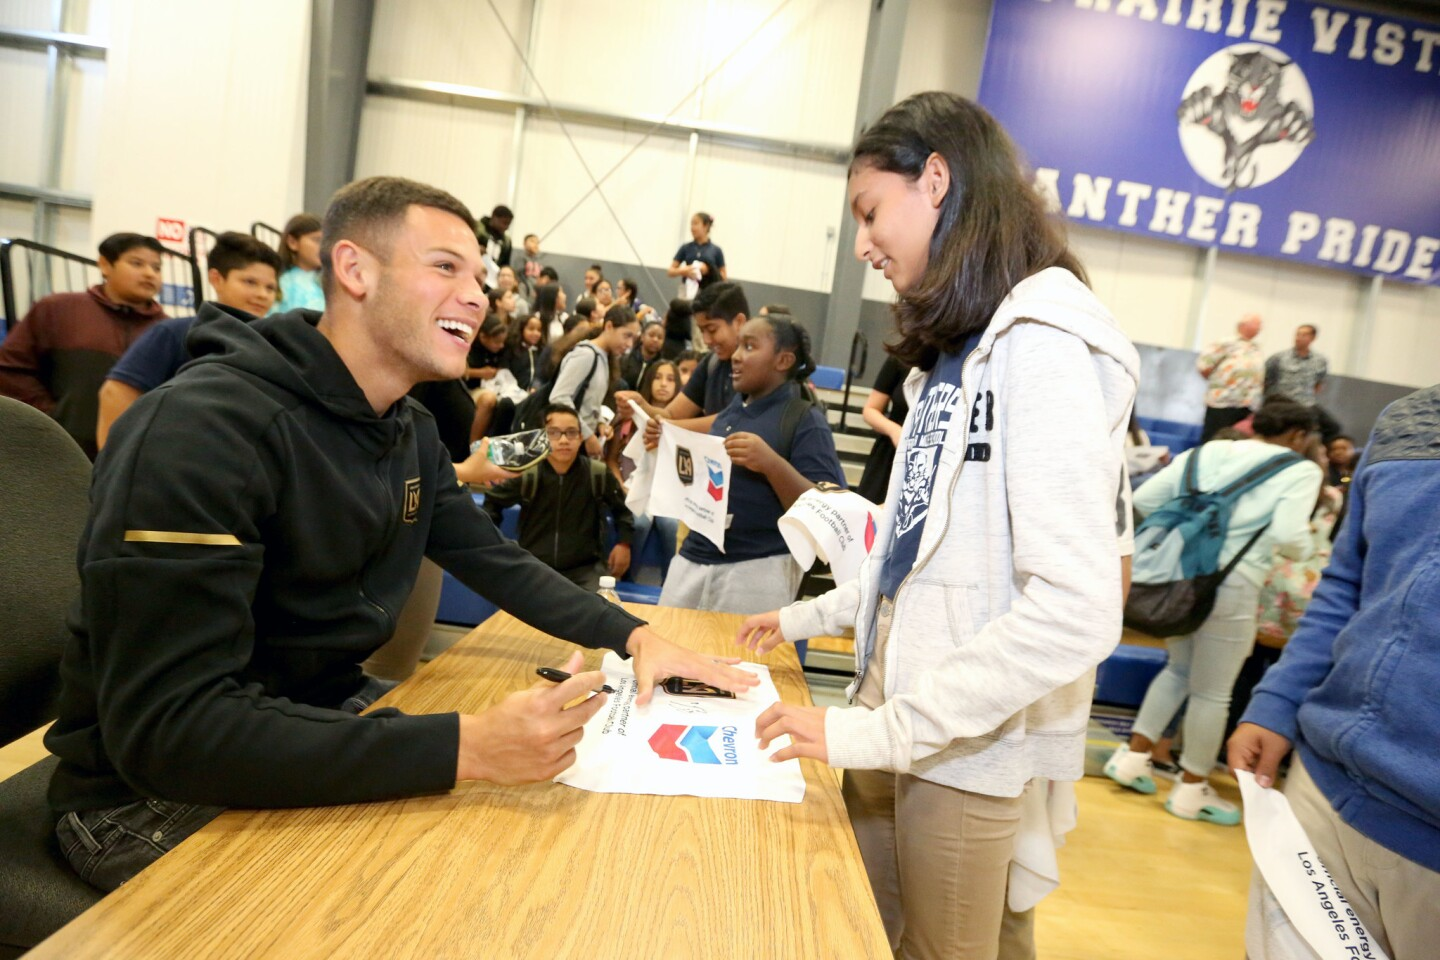 LAFC Player Christian Ramirez Surprises Students at Prairie Vista Middle School During Chevron's Fuel Your School Event on Monday, Oct. 22, 2018 in Hawthorne, Calif. (Casey Rodgers/AP Images for Chevron)